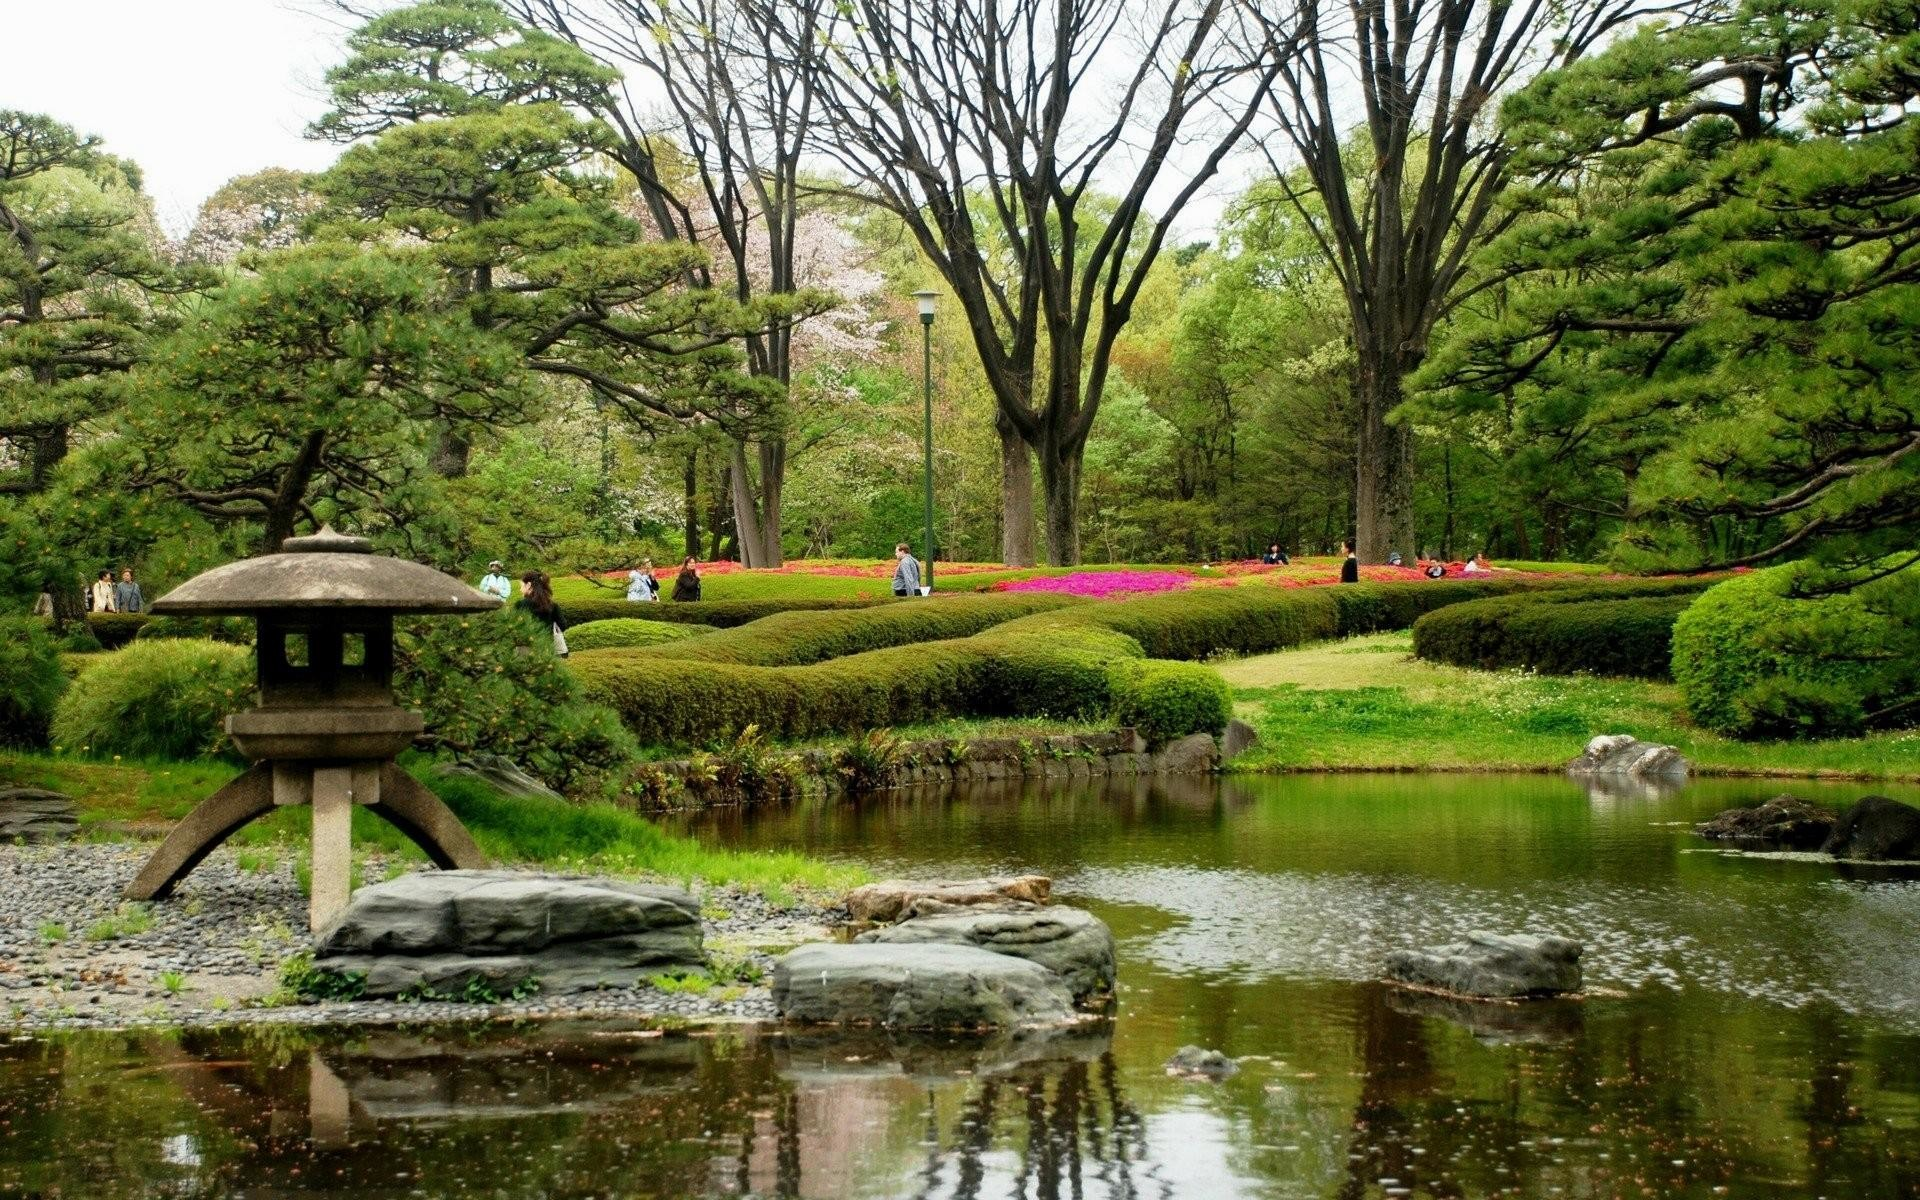 wallpaper.wiki-Nature-gardens-trees-in-japan-PIC-